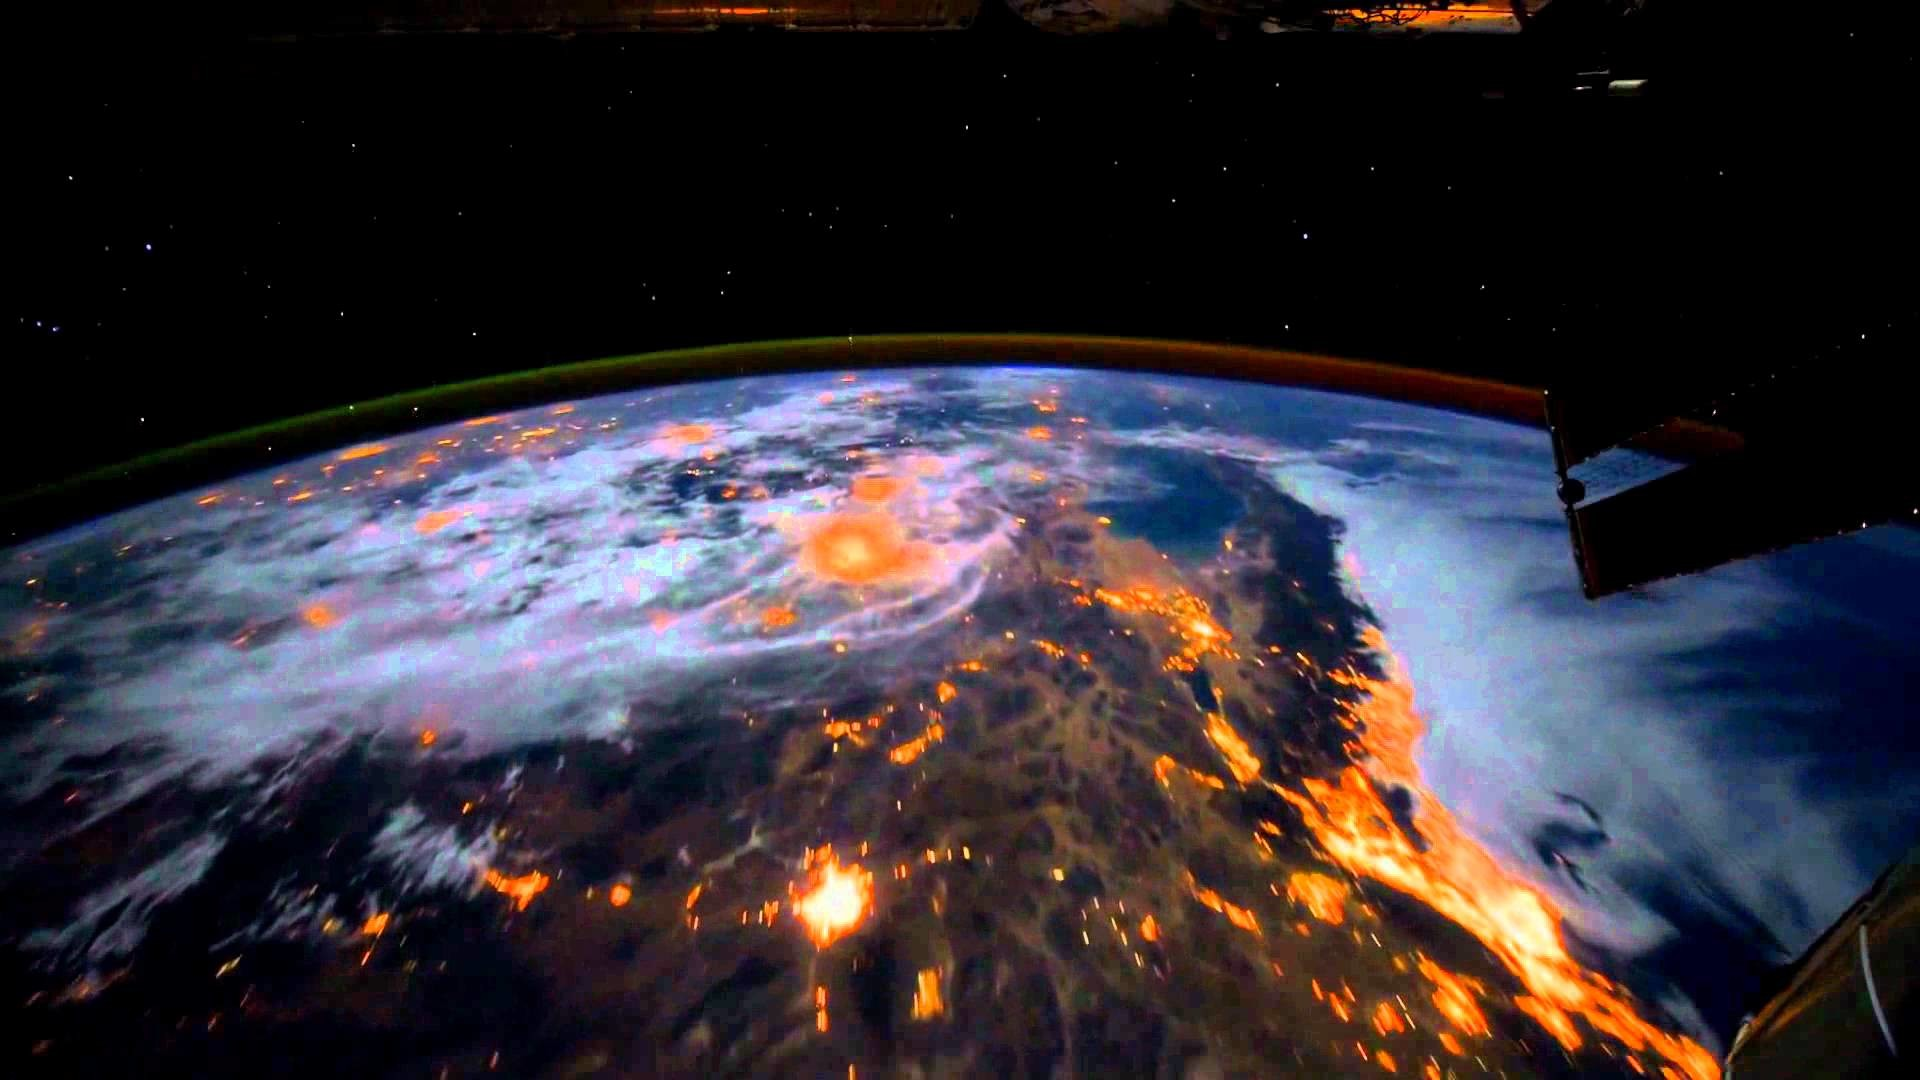 1920x1080 [Dreamscene] Animated Wallpaper - Earth View from the ISS - YouTube